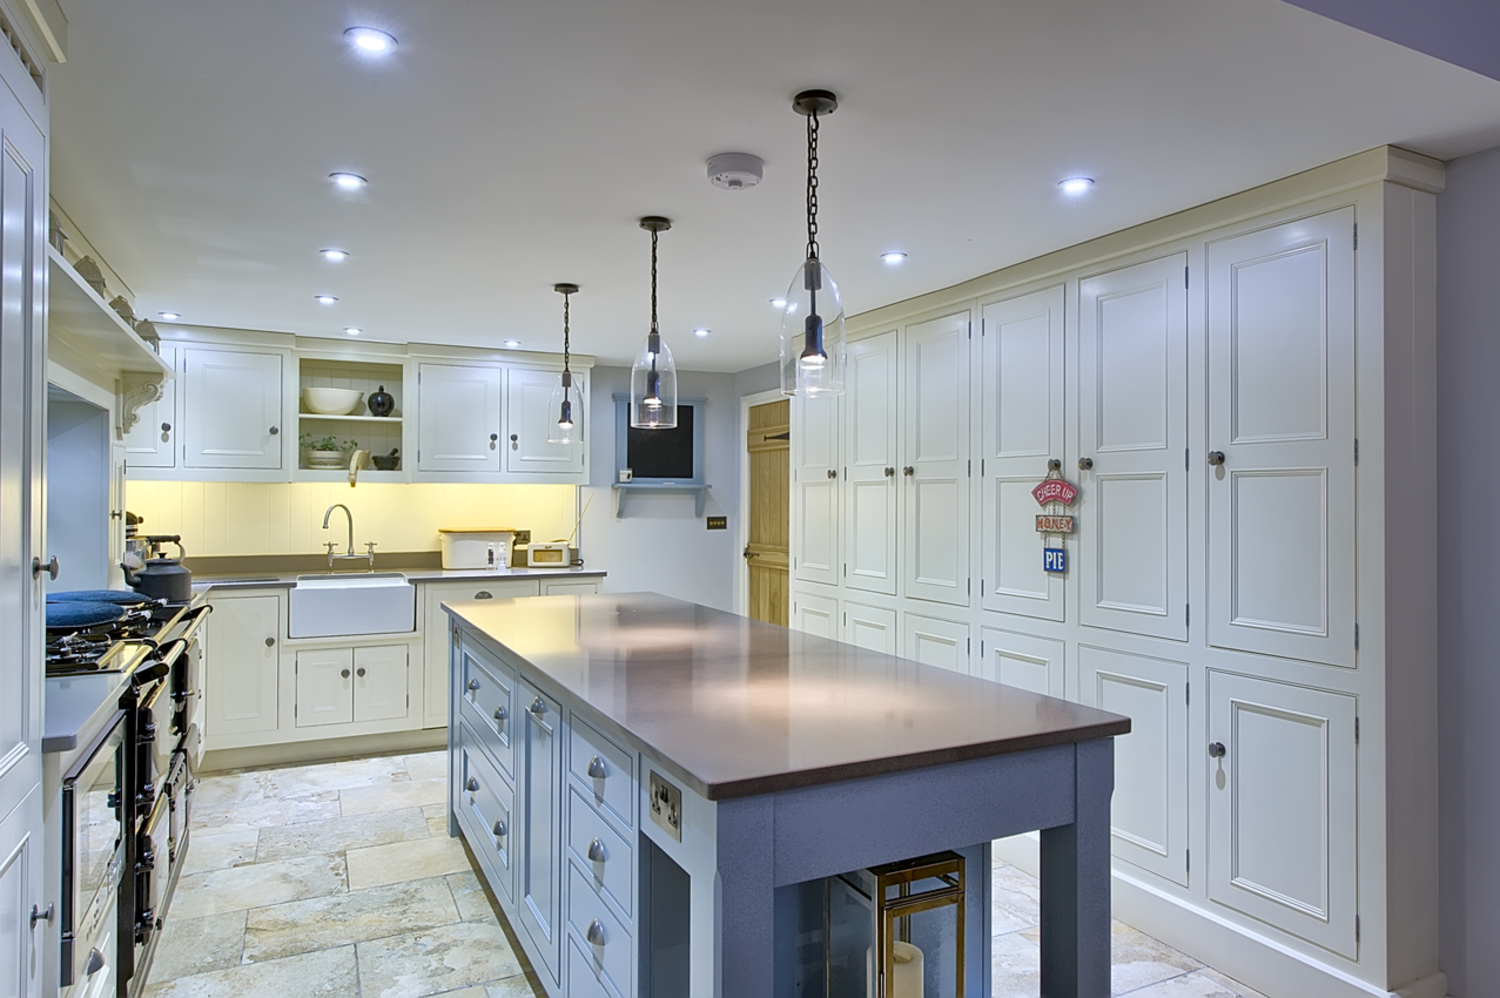 Kitchen island counter books of a house redesign by Harvey Norman Architects Cambridge